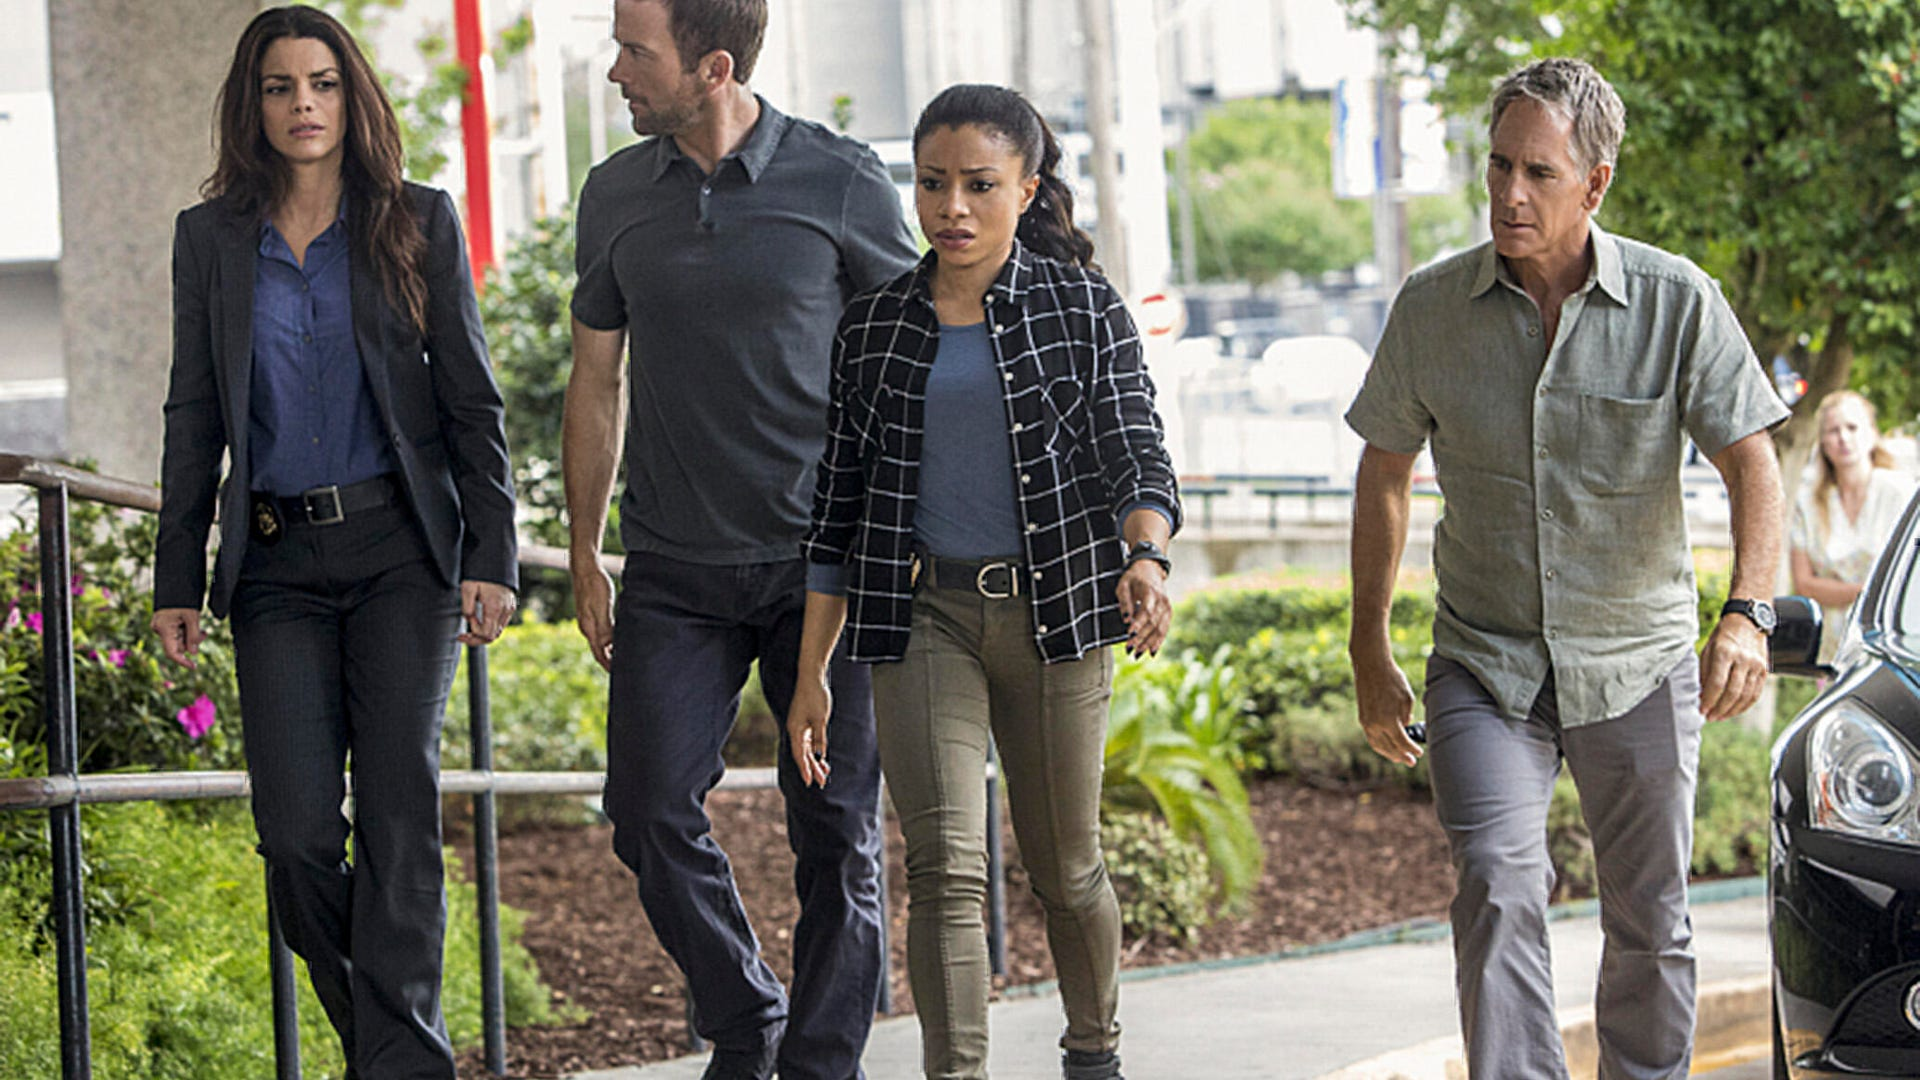 NCIS: New Orleans, Vanessa Ferlito as FBI Special Agent Tammy Gregorio, Lucas Black as Special Agent Christopher LaSalle, Shalita Grant as Sonja Percy, and Scott Bakula as Special Agent Dwayne Pride